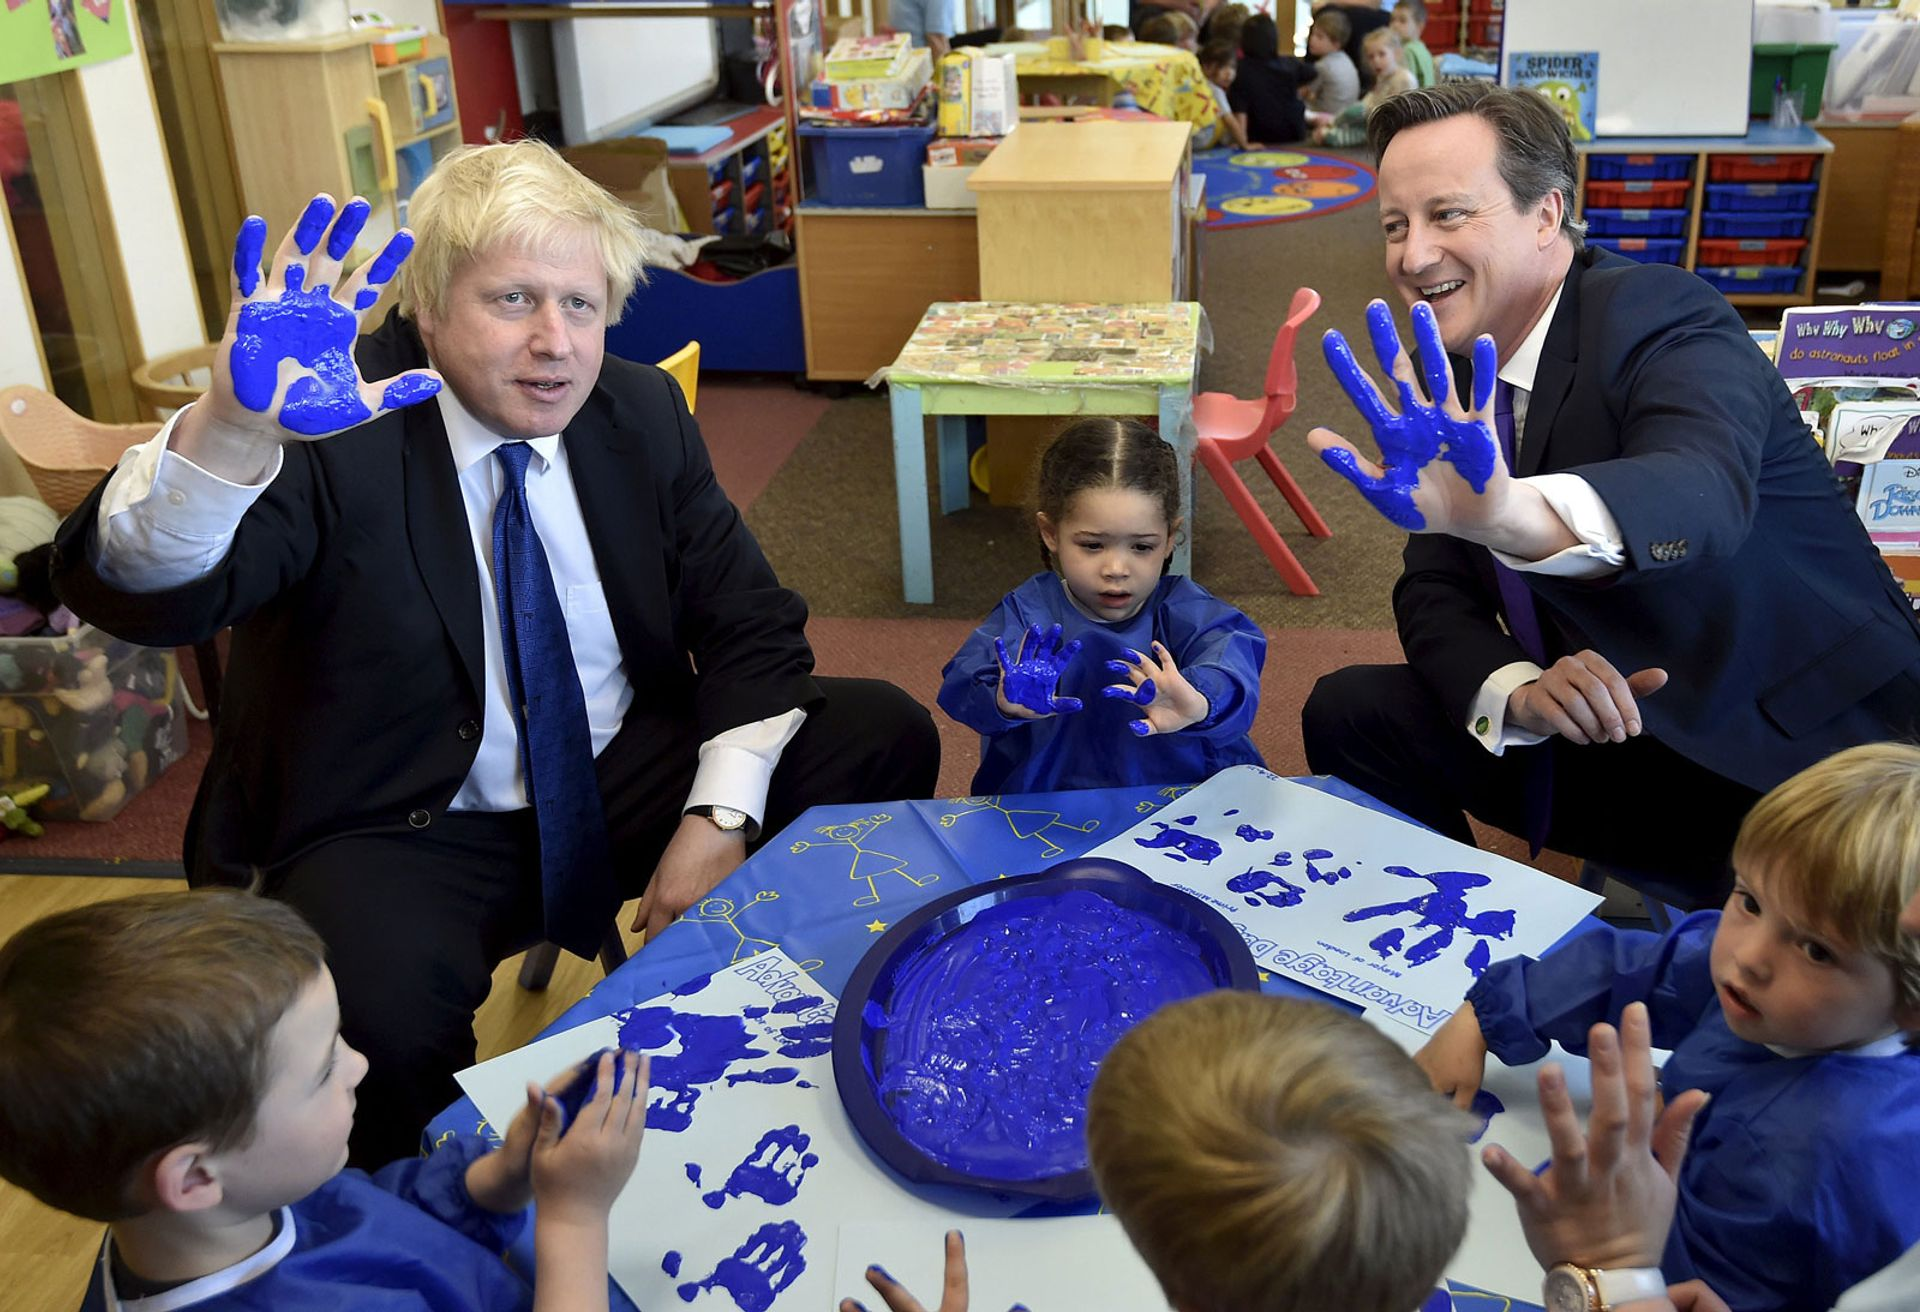 Boris Johnson in 2015 when he was Mayor of London with the UK's then prime minister David Cameron taking part in a hand-printing session with children Photo by Toby Melville - WPA Pool / Getty Images